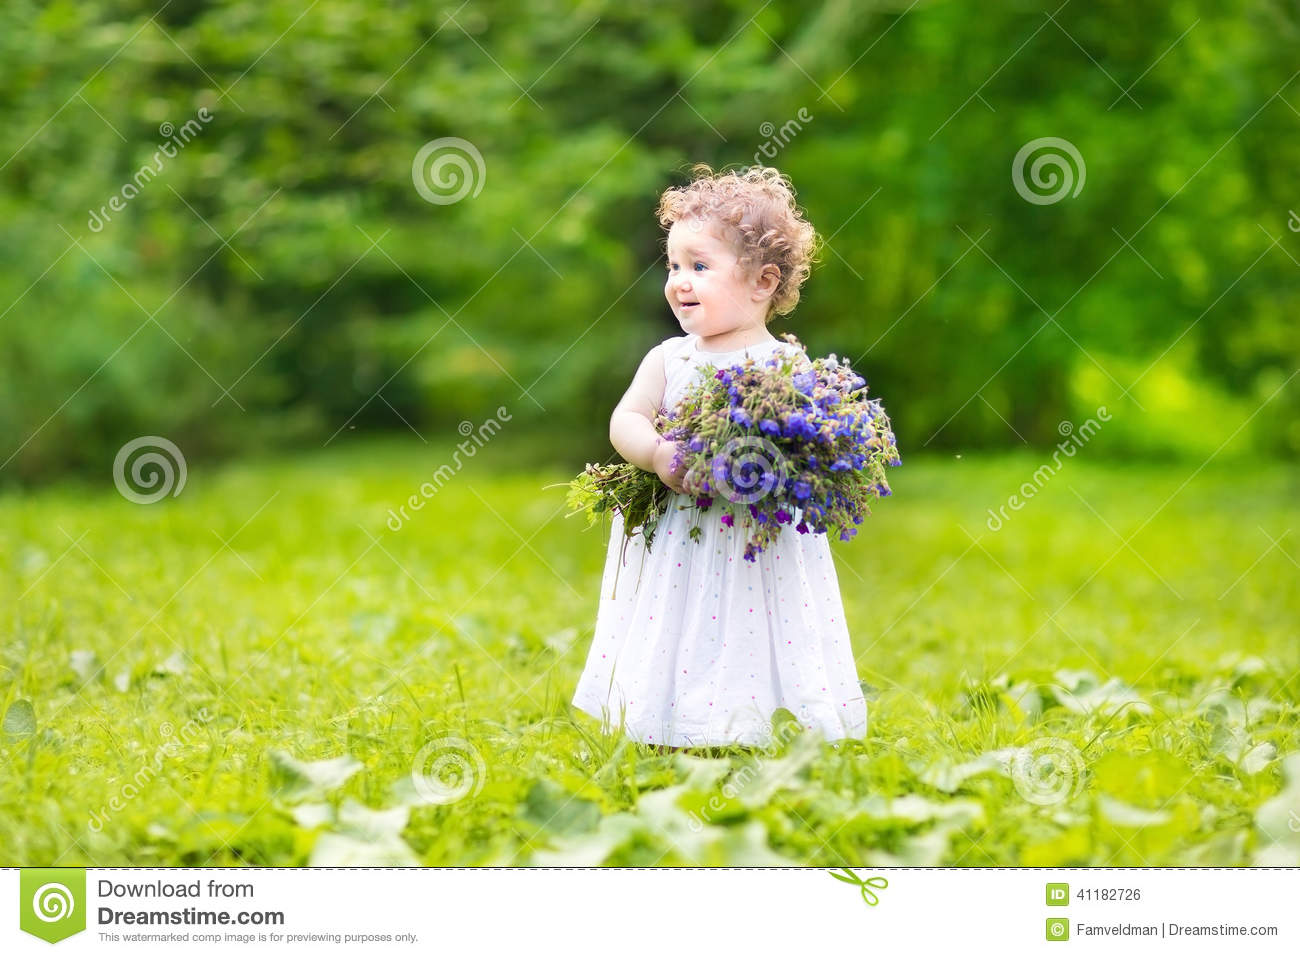 beautiful baby girl carrying flowers in a garden stock photo - image